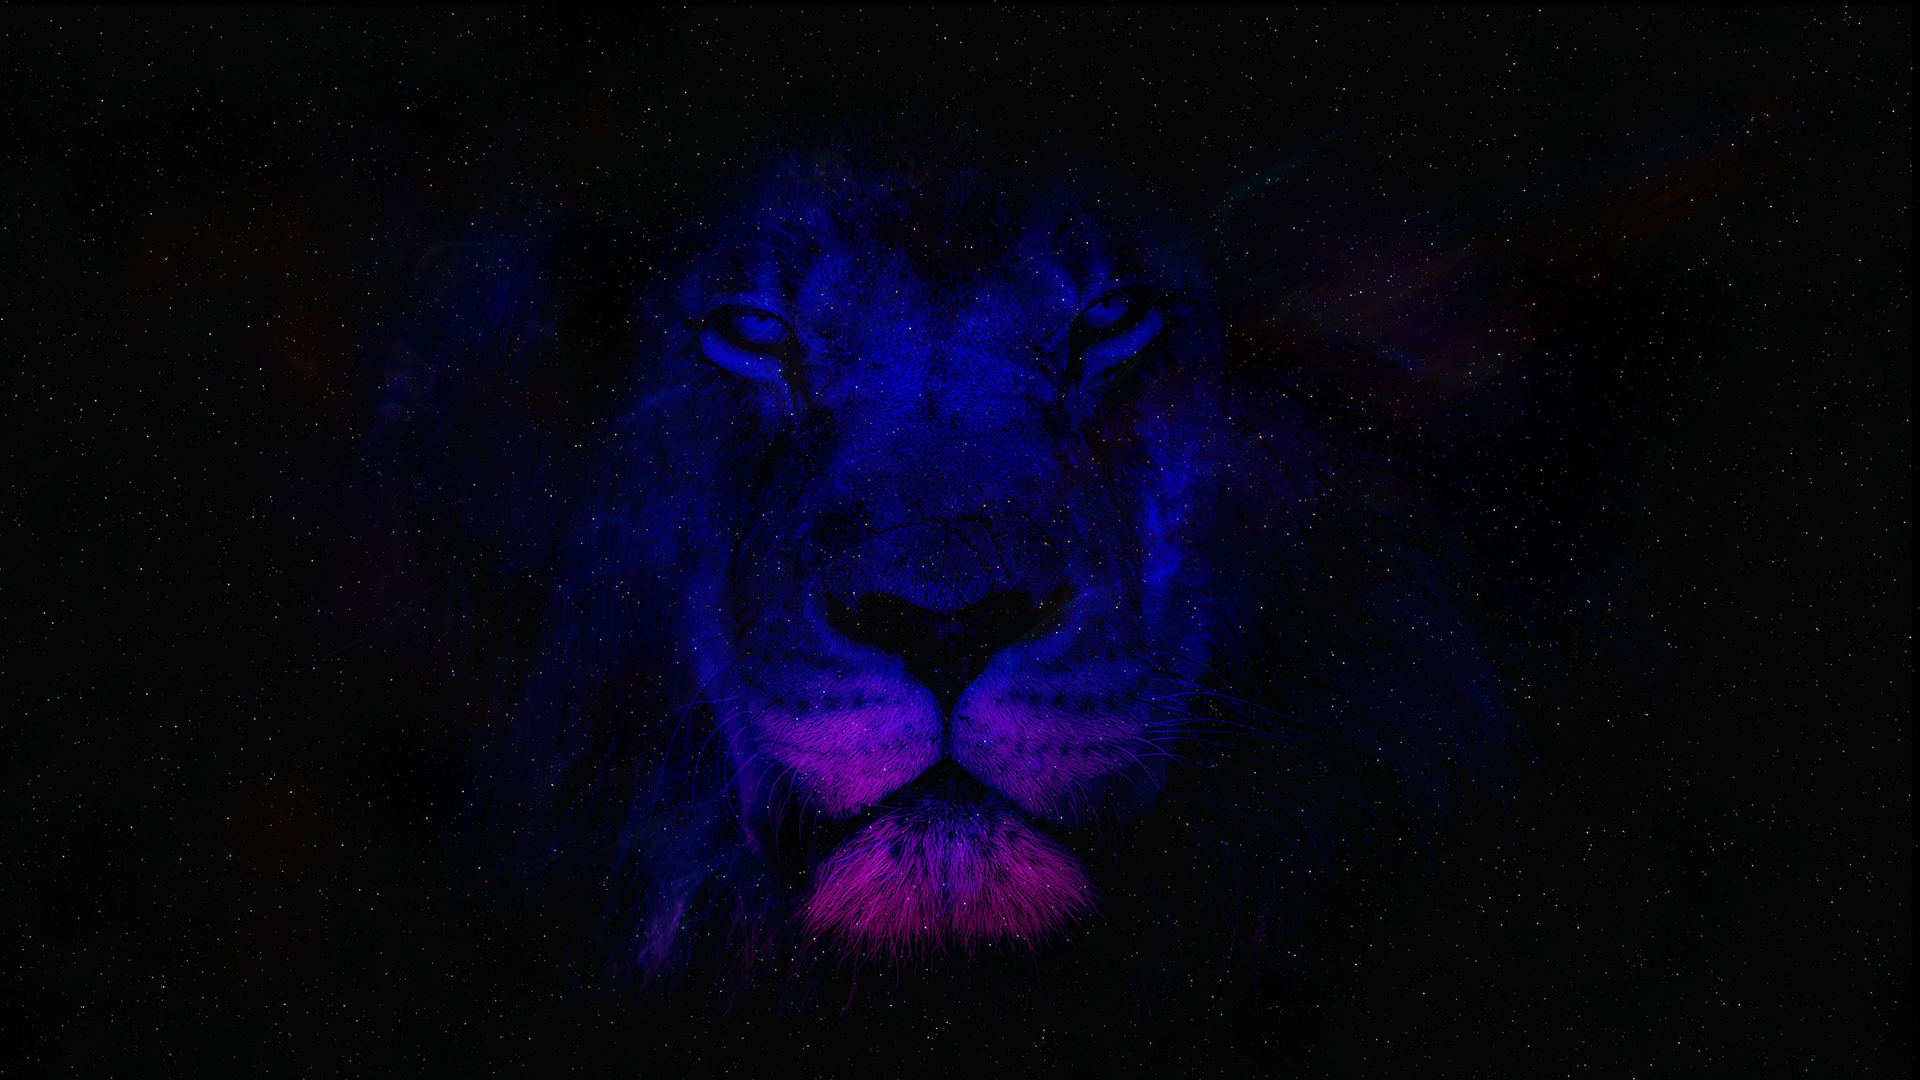 4k Uhd Backgrounds Lion